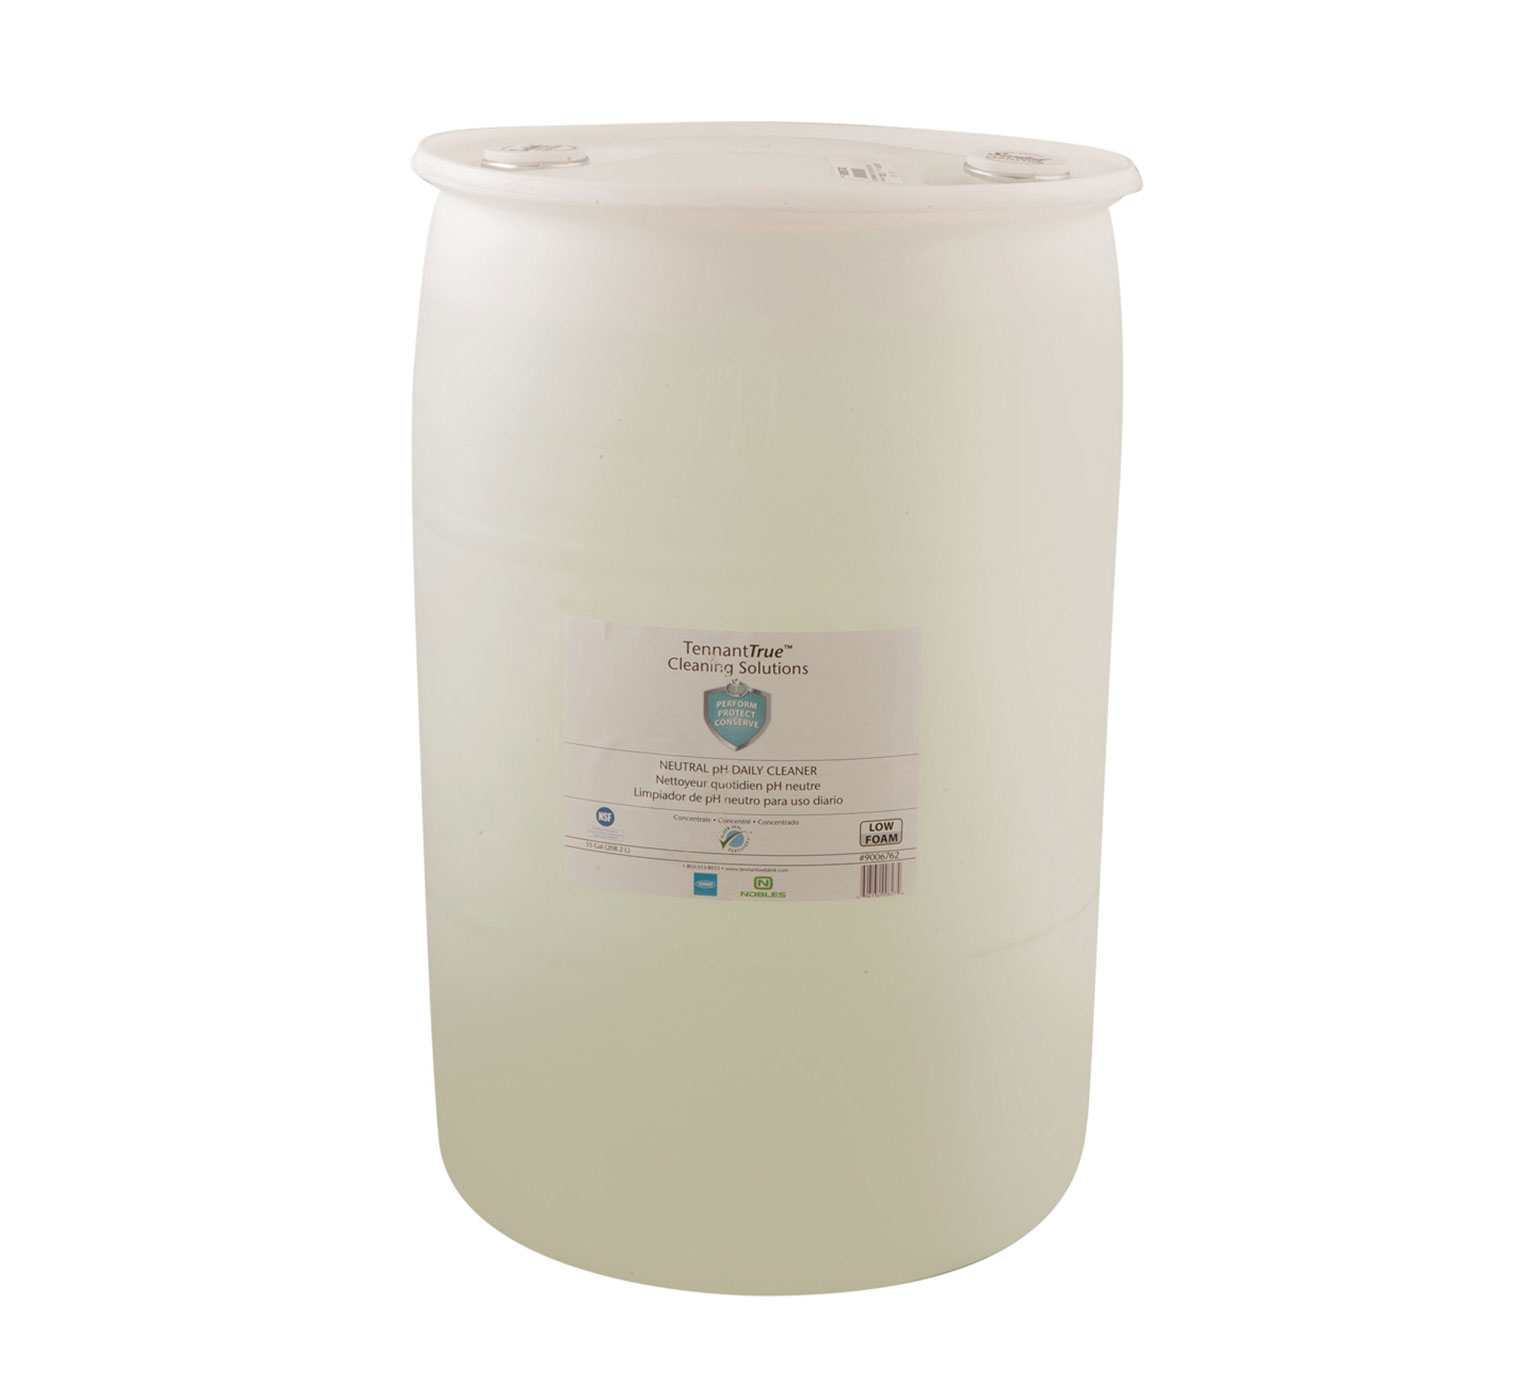 Tennant Clear Neutral pH Daily Cleaner 55 Gallon 9006762